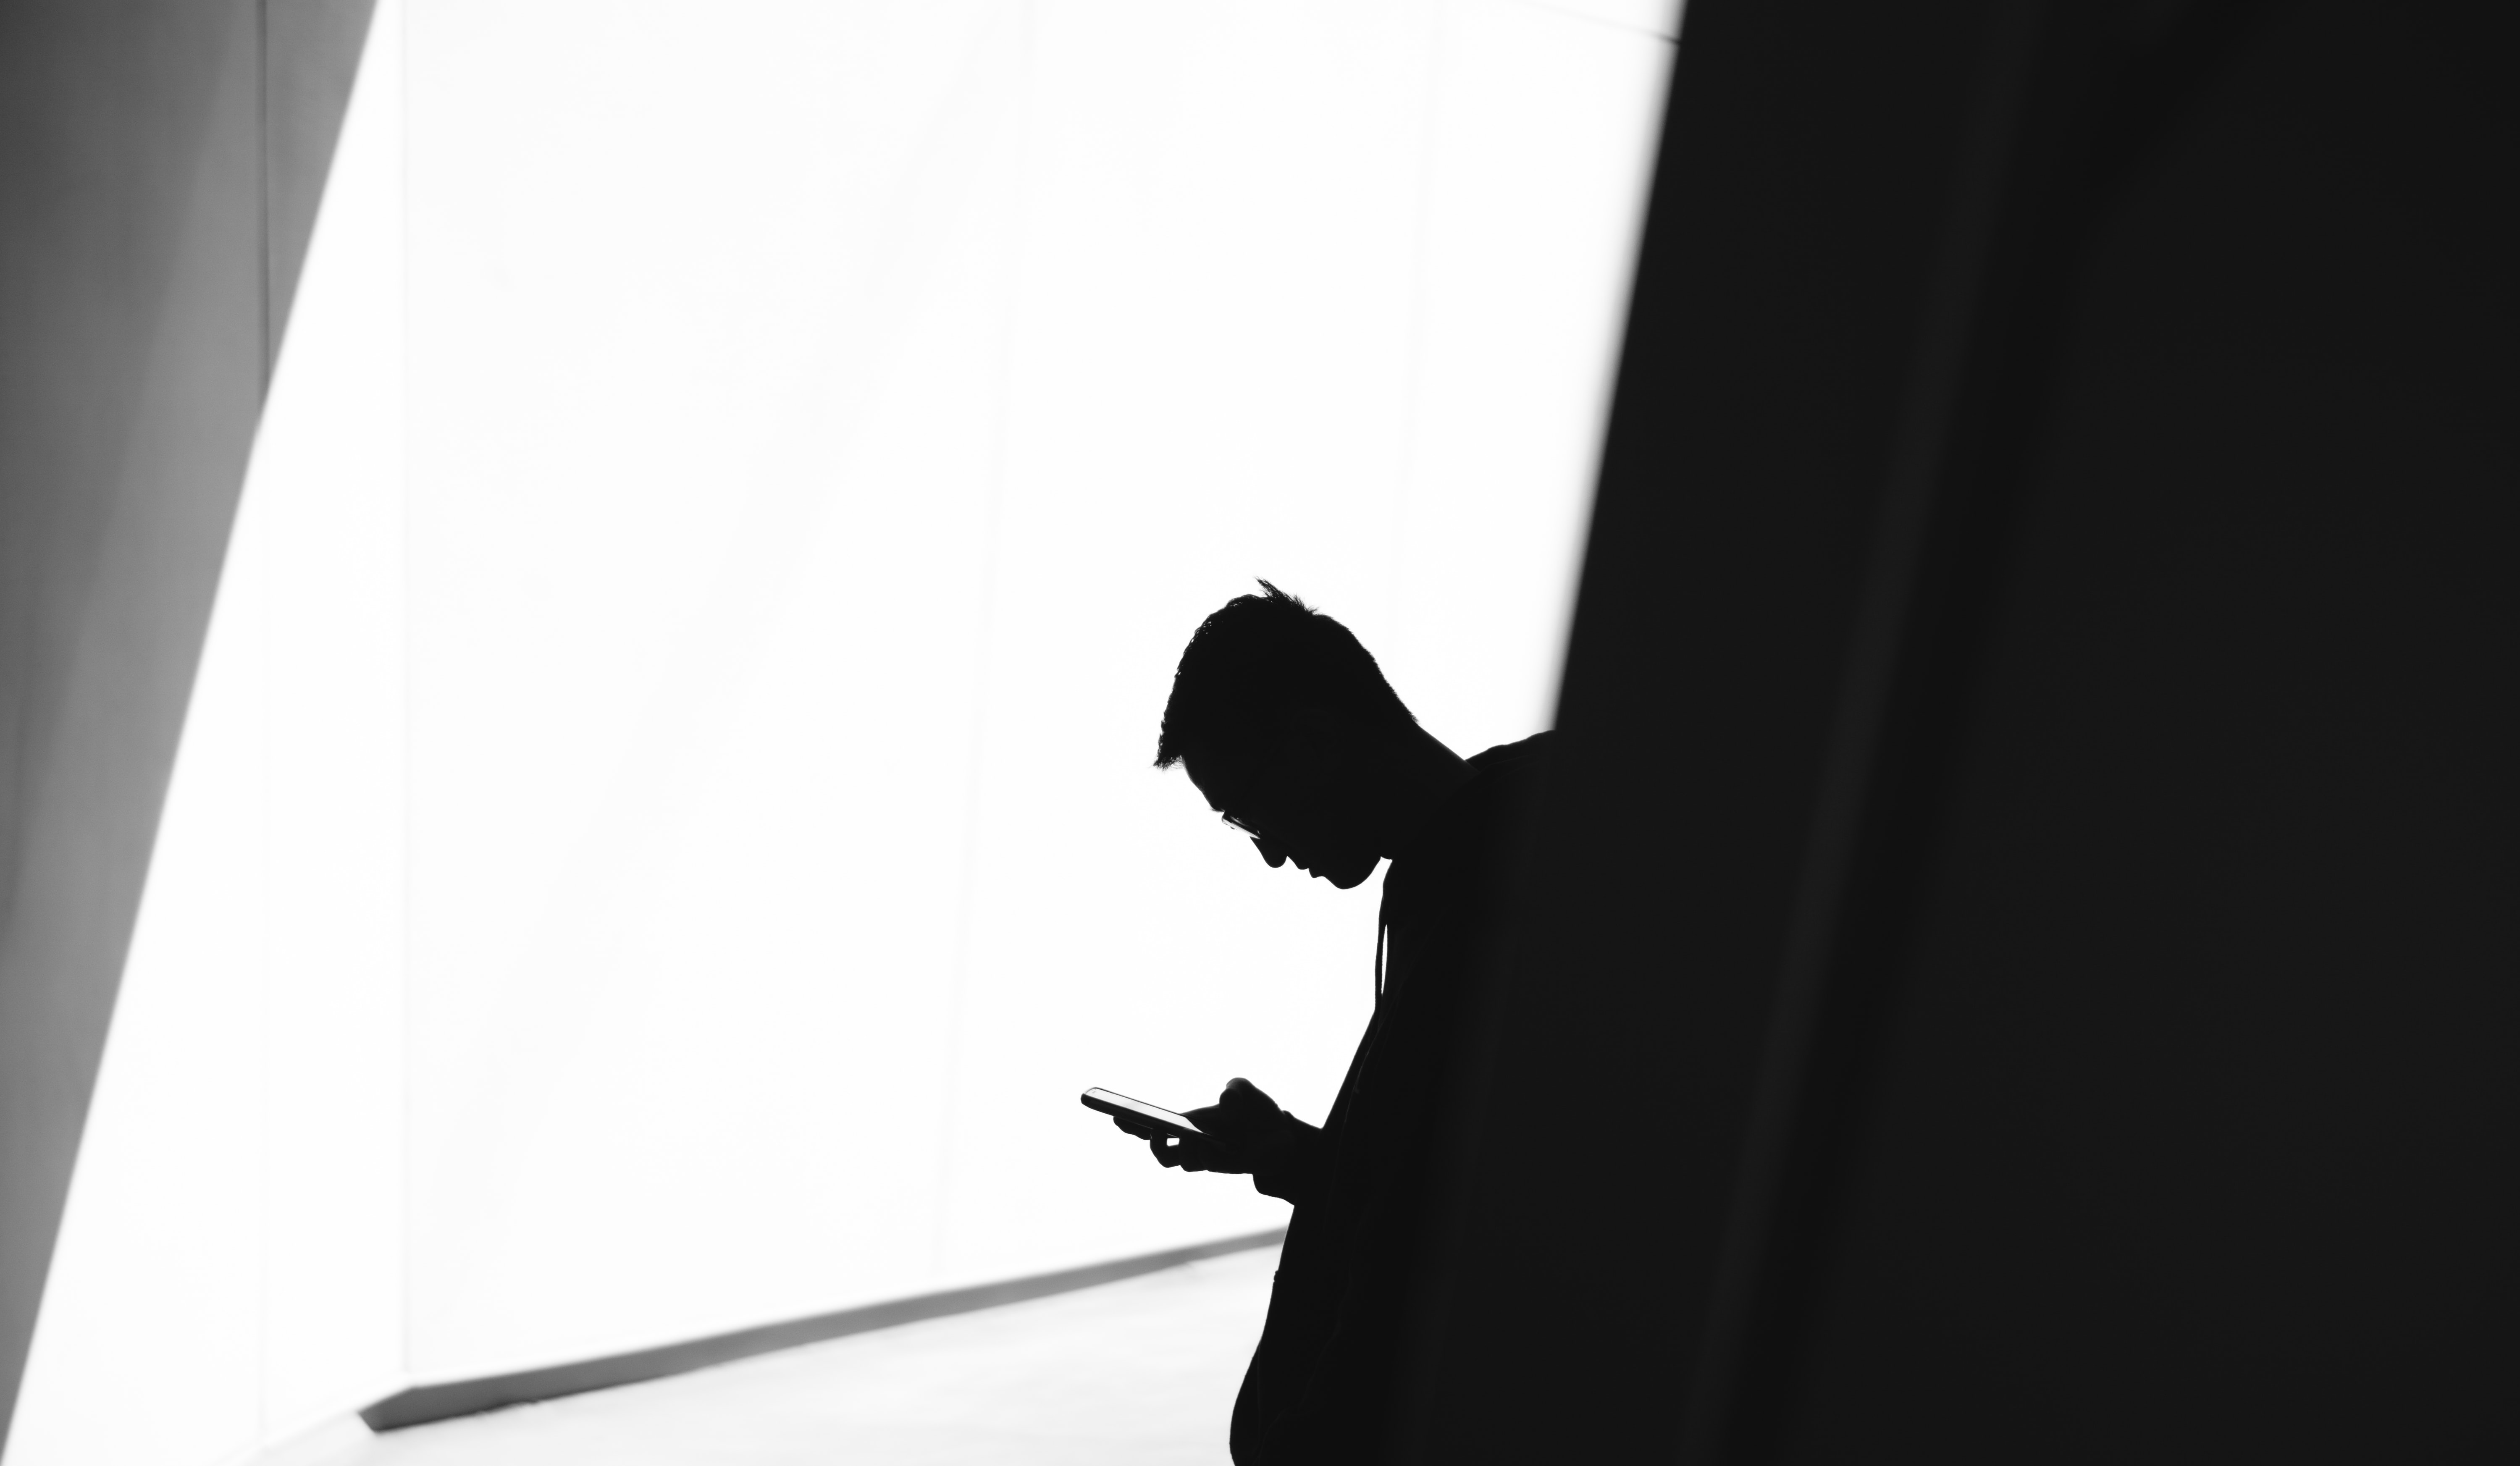 person using phone leaning on wall in silhouette photography